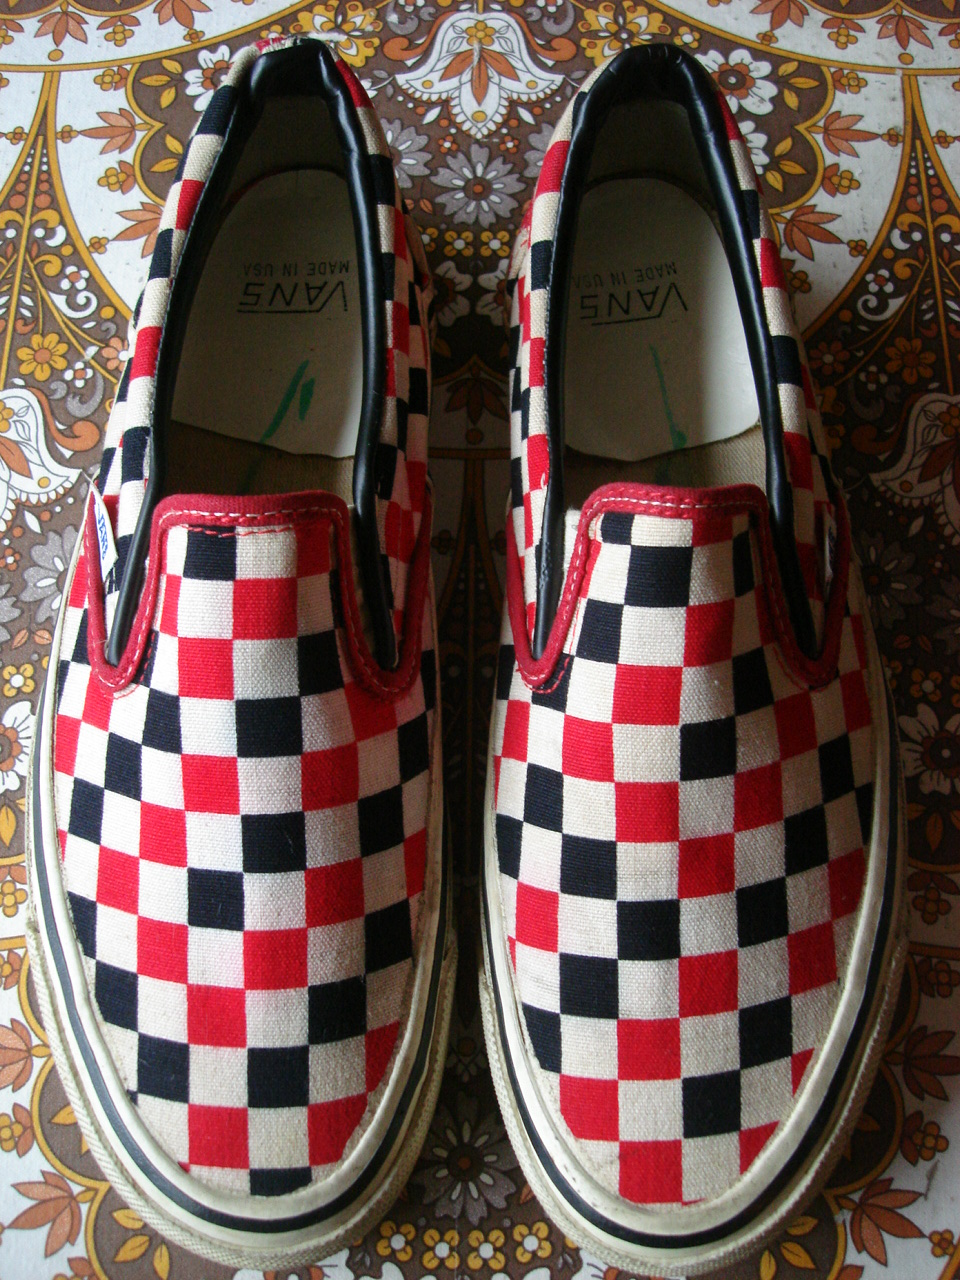 205cf32c366a38 ... white black US8 off the wall 80 s bmx. vintage vans style  98 slip-on  tri checkerboard made in usa circa 1985 used (without box) US8 UK7-7.5